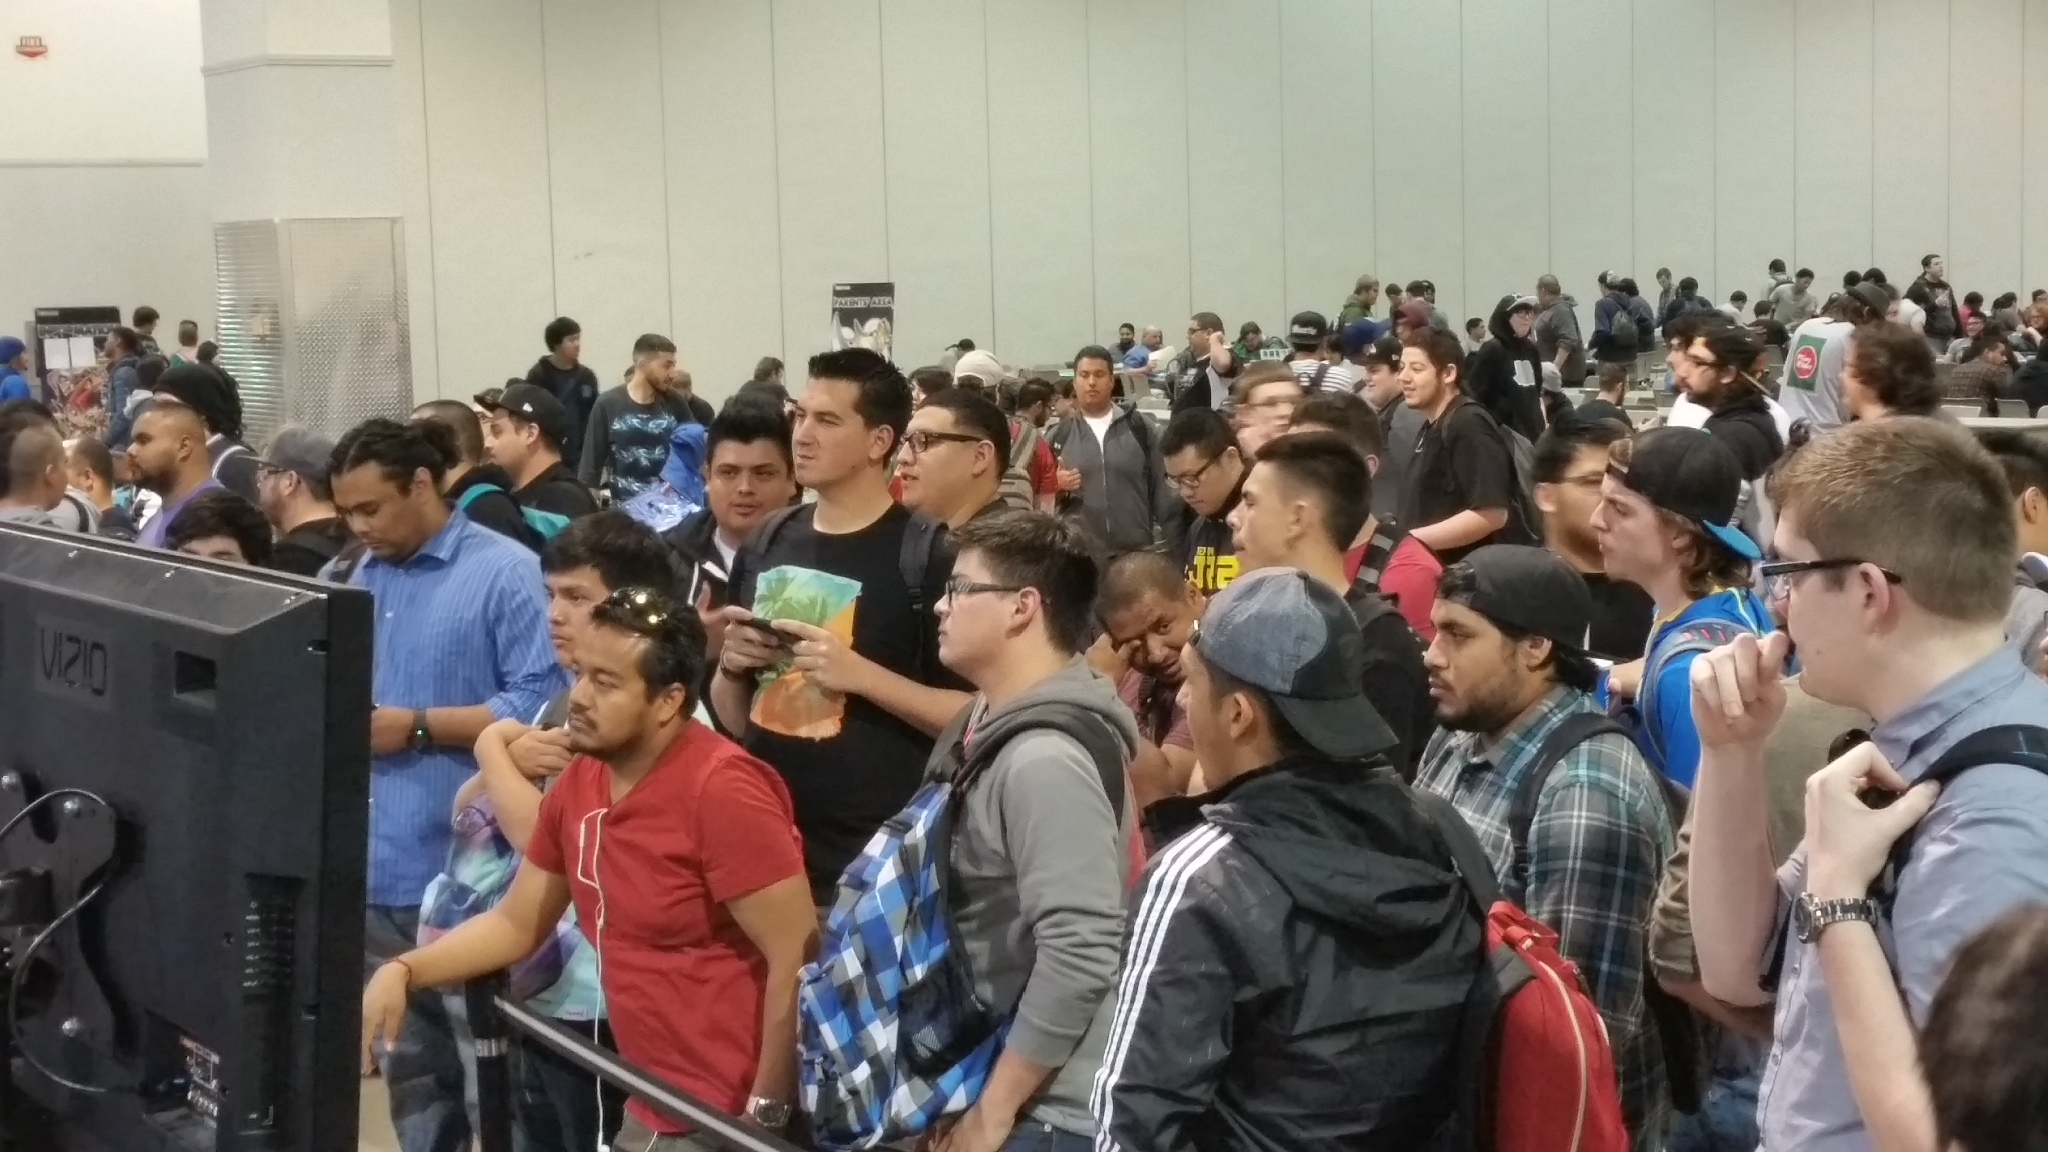 A huge crowd gathers to watch the Feature Match!